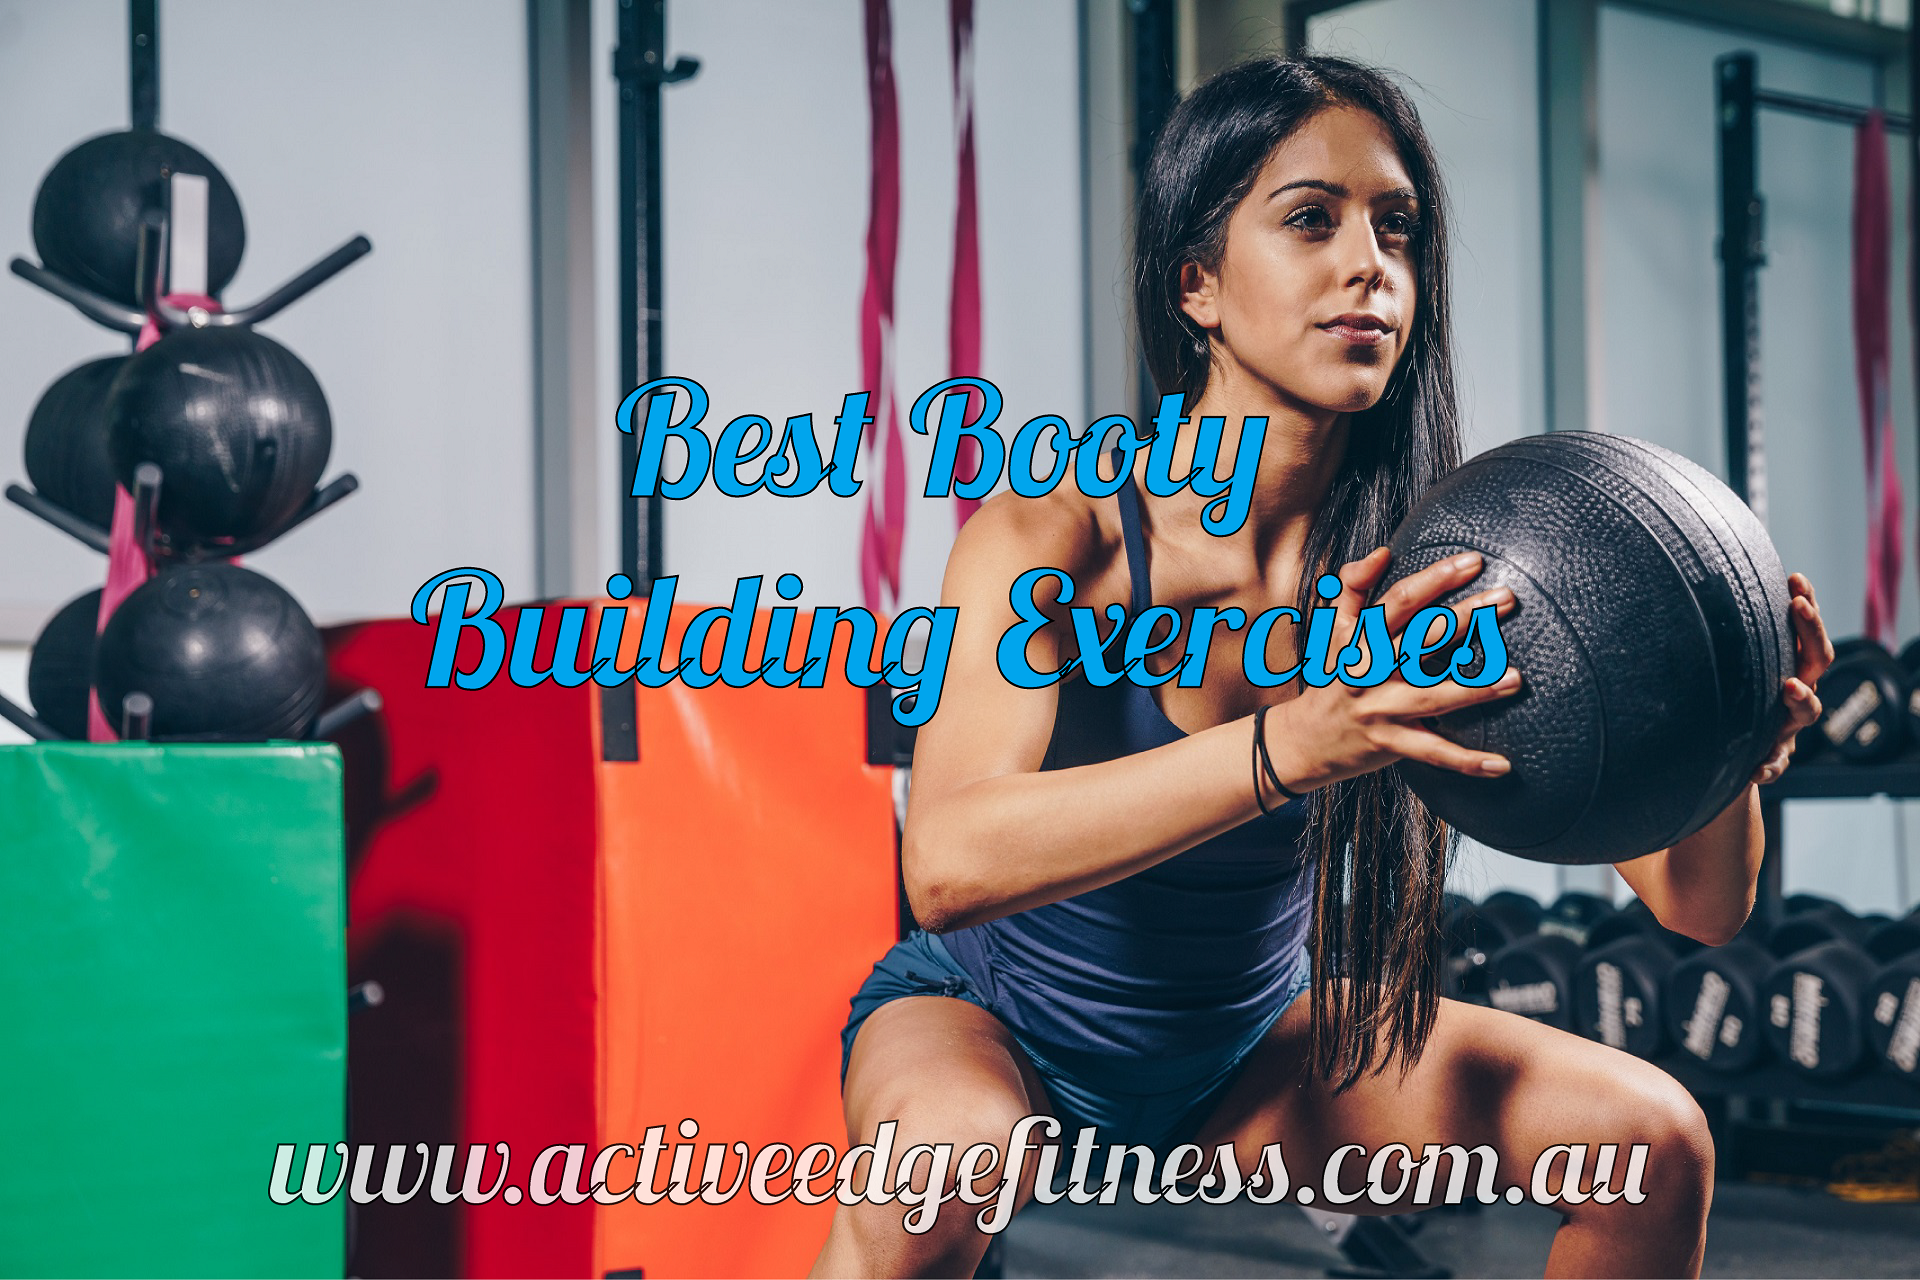 """Woman performing a squat with the caption """"Best Booty Building Exercises"""""""